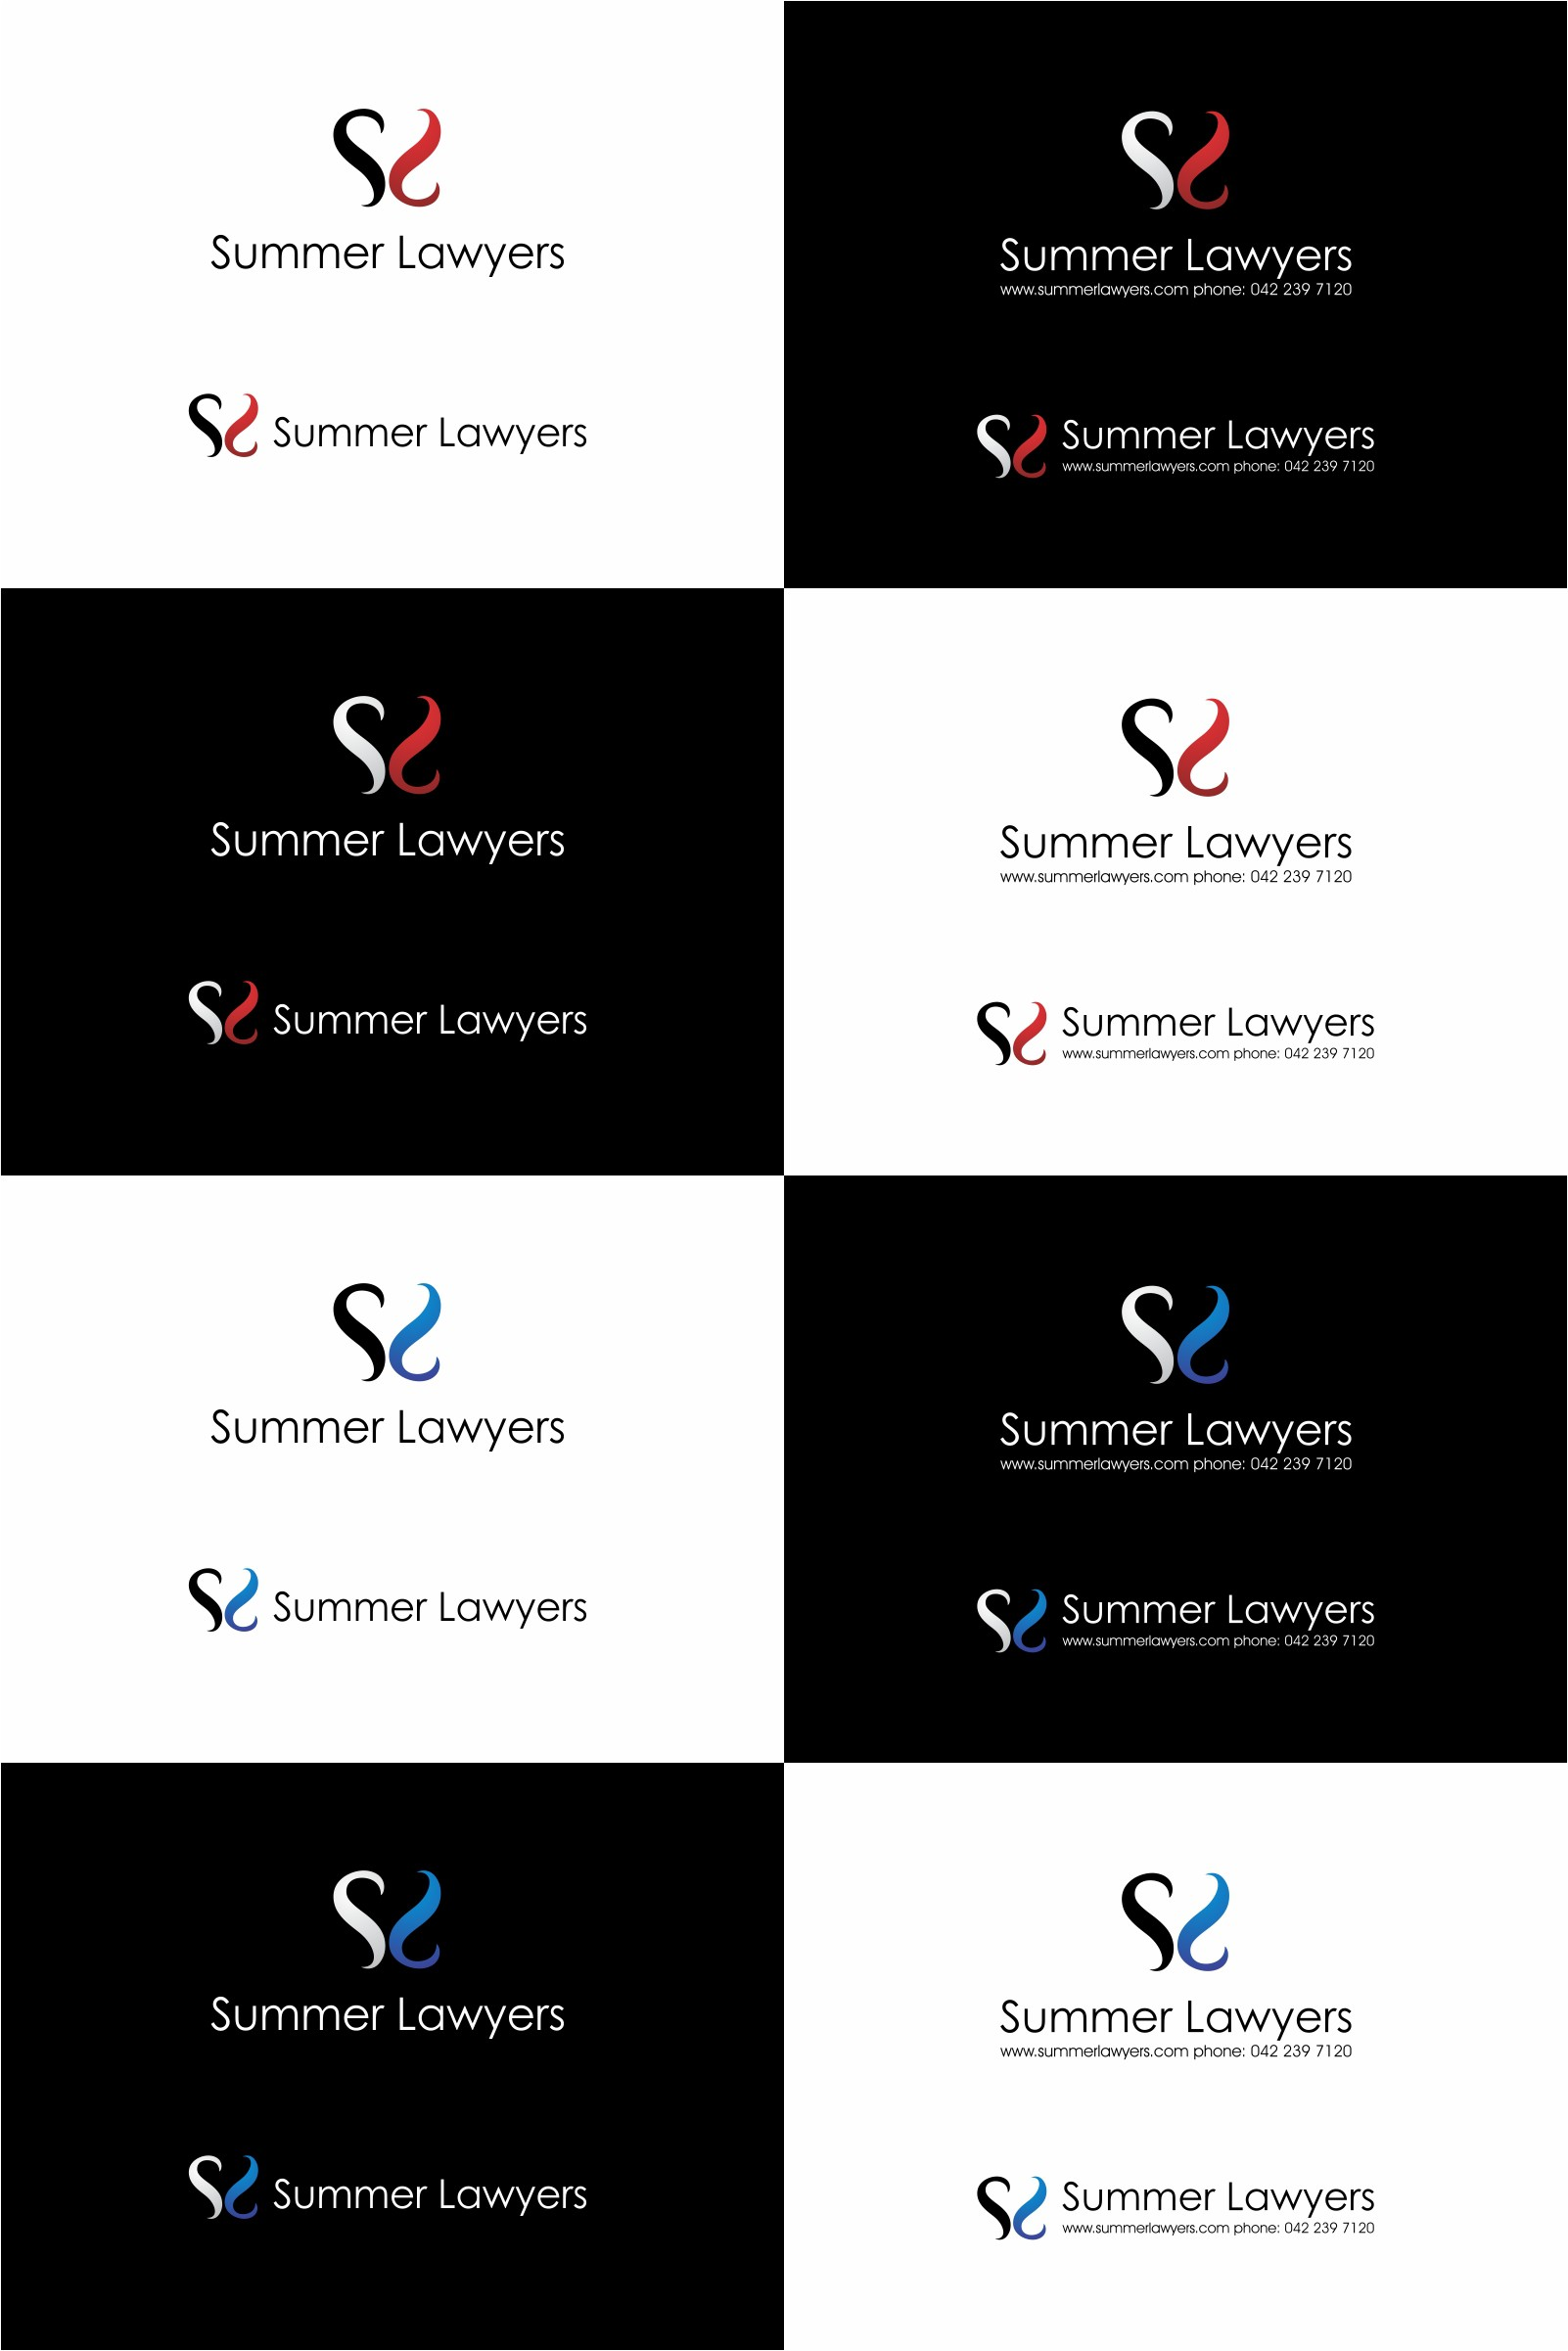 New logo wanted for Summer Lawyers